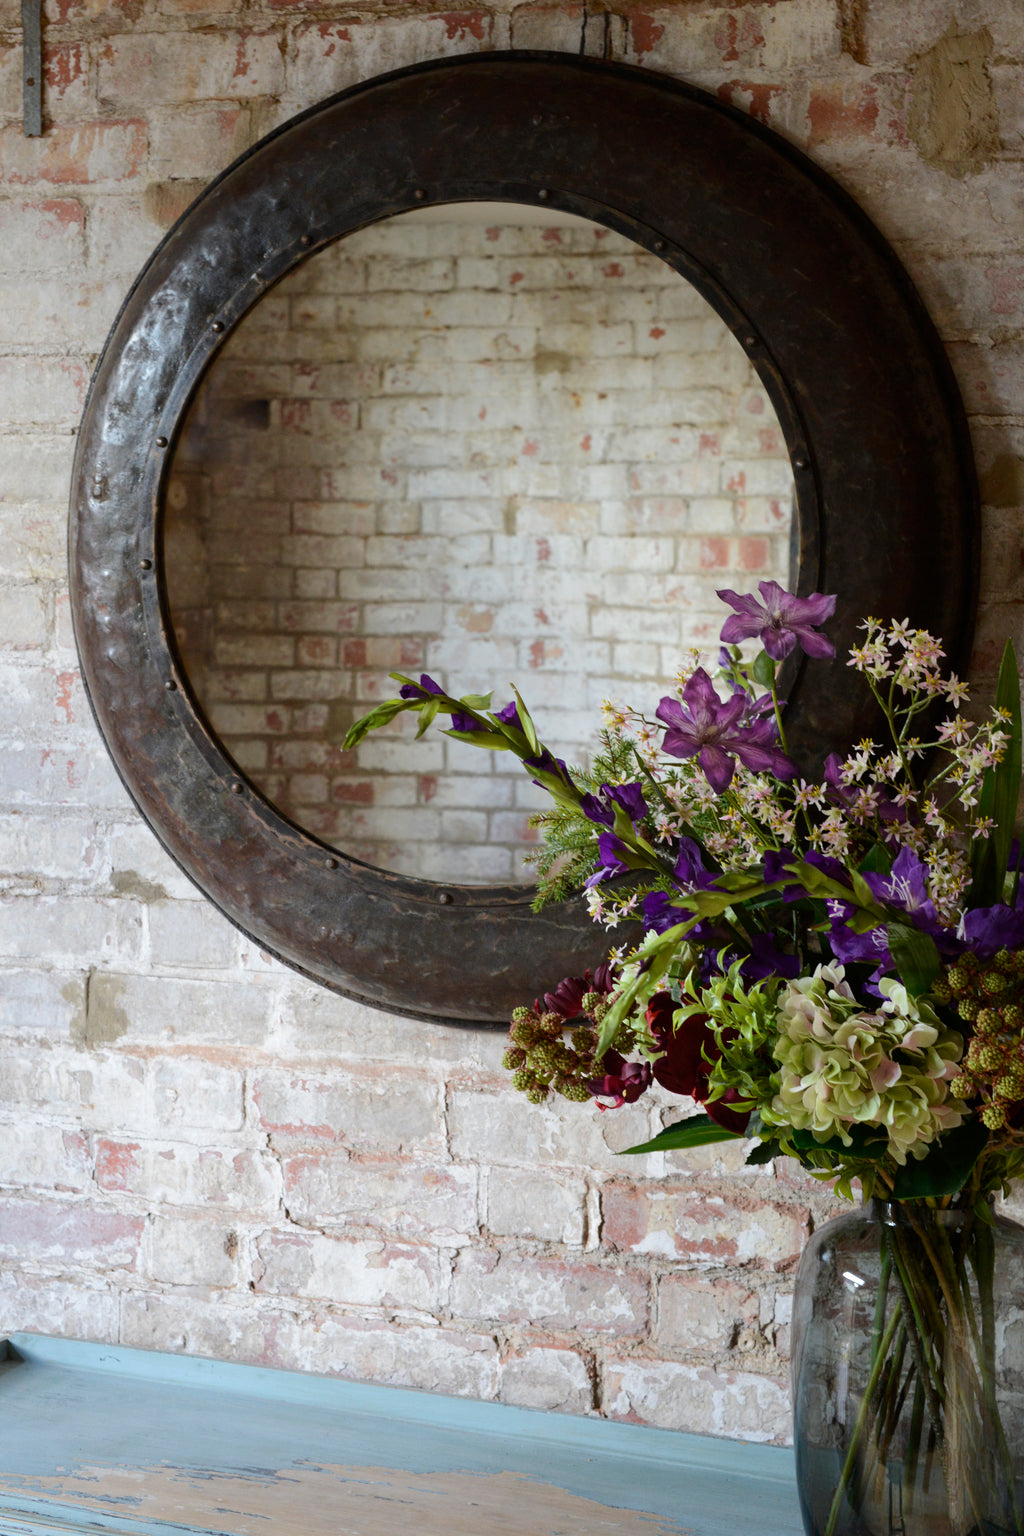 Large mirror hung on exposed brick wall next to flowers in vase